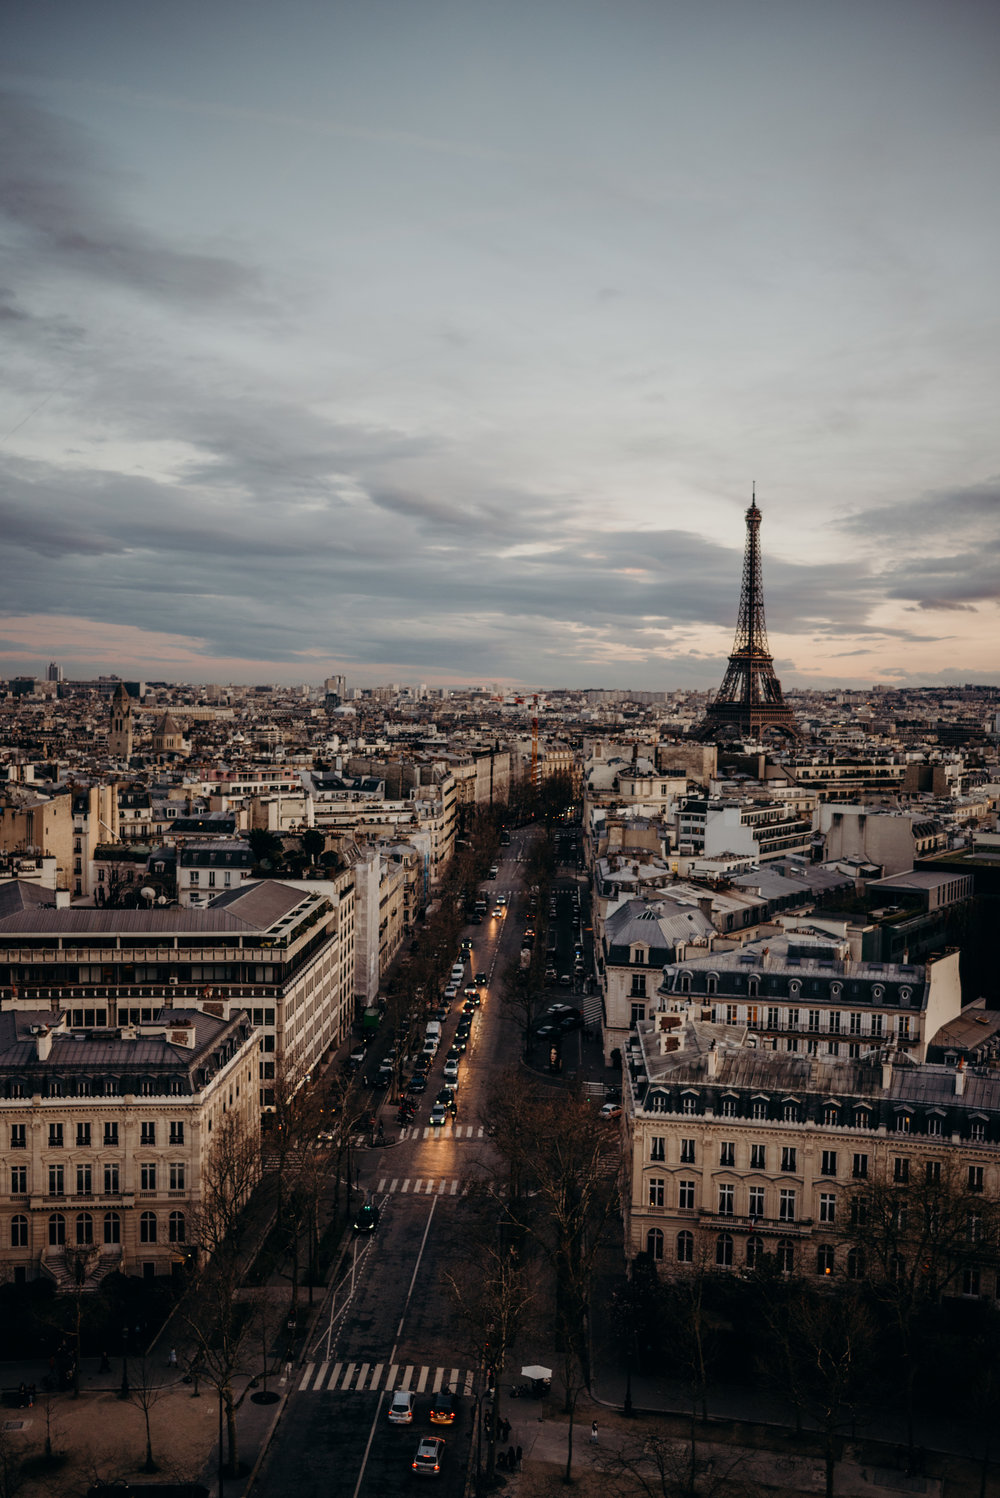 Paris streets in the evening with the Eiffel Tower in background